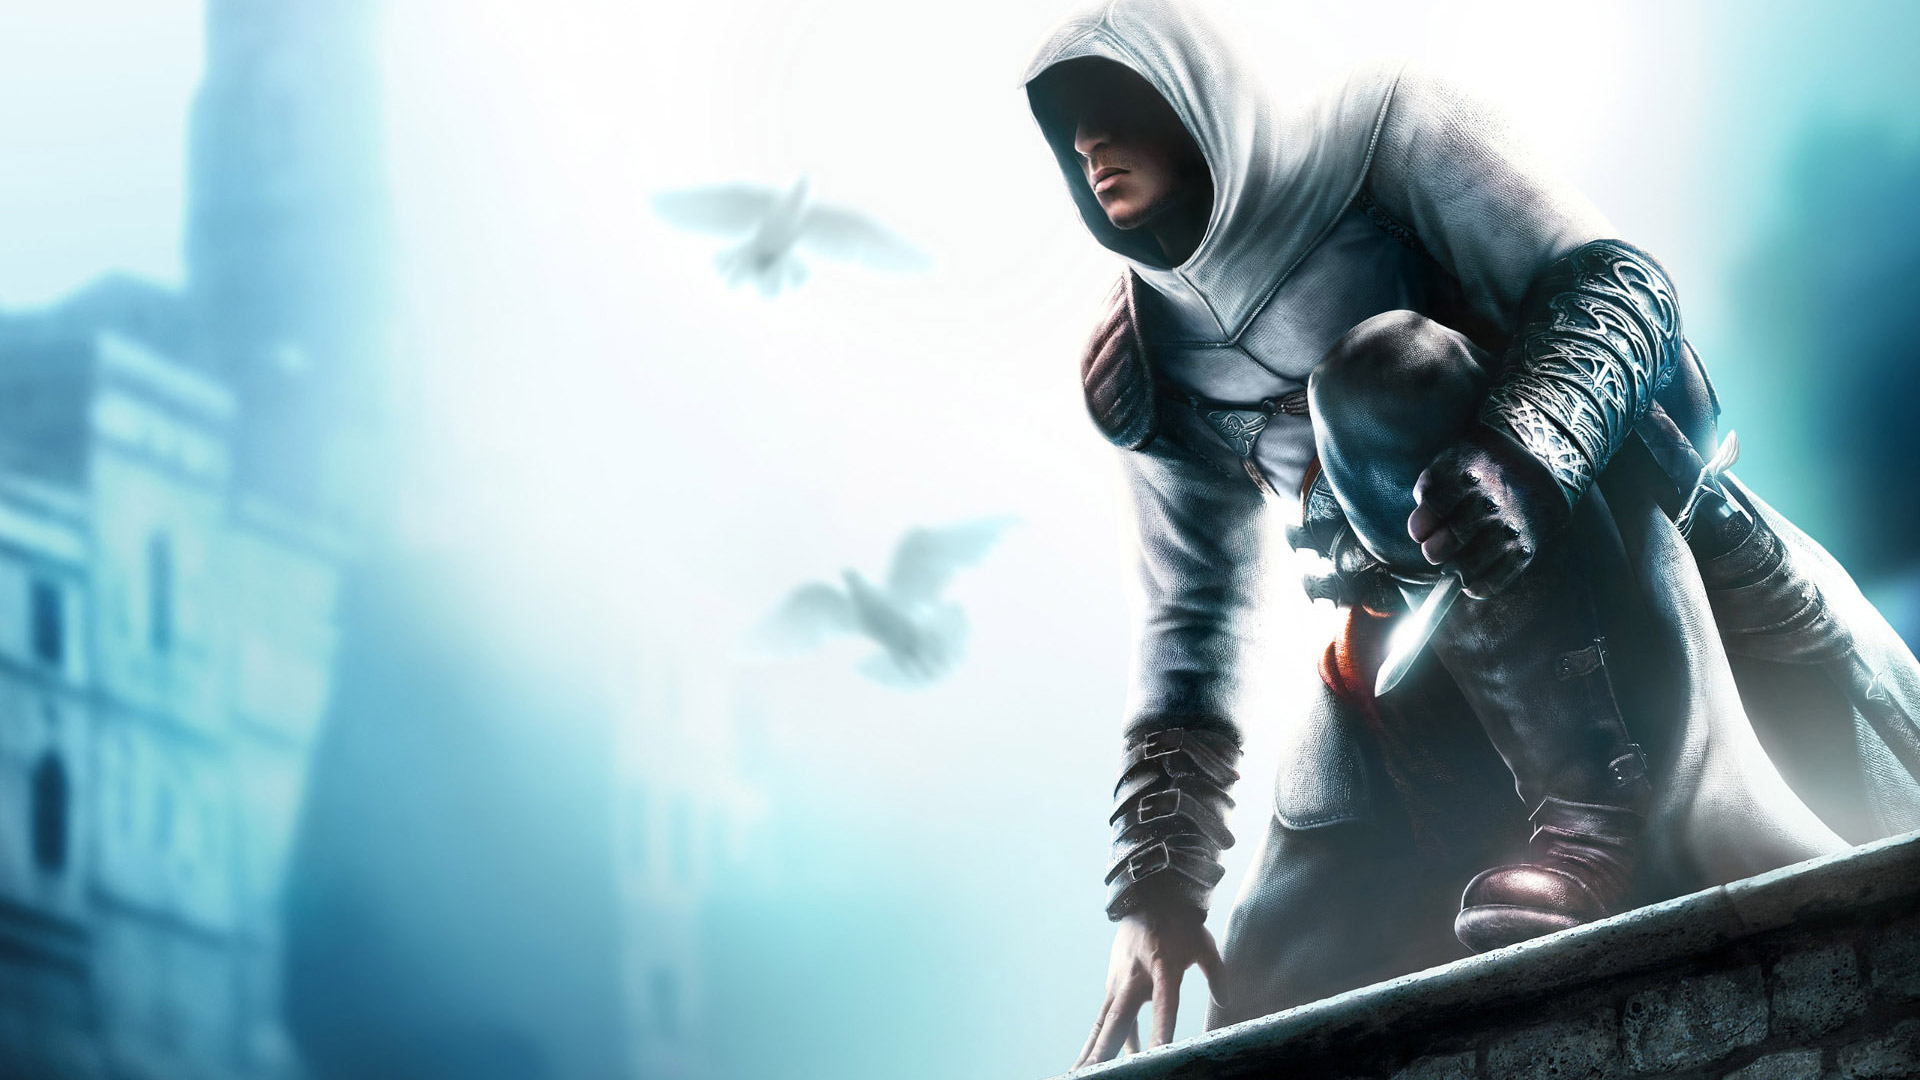 Assassins Creed wallpaper 8